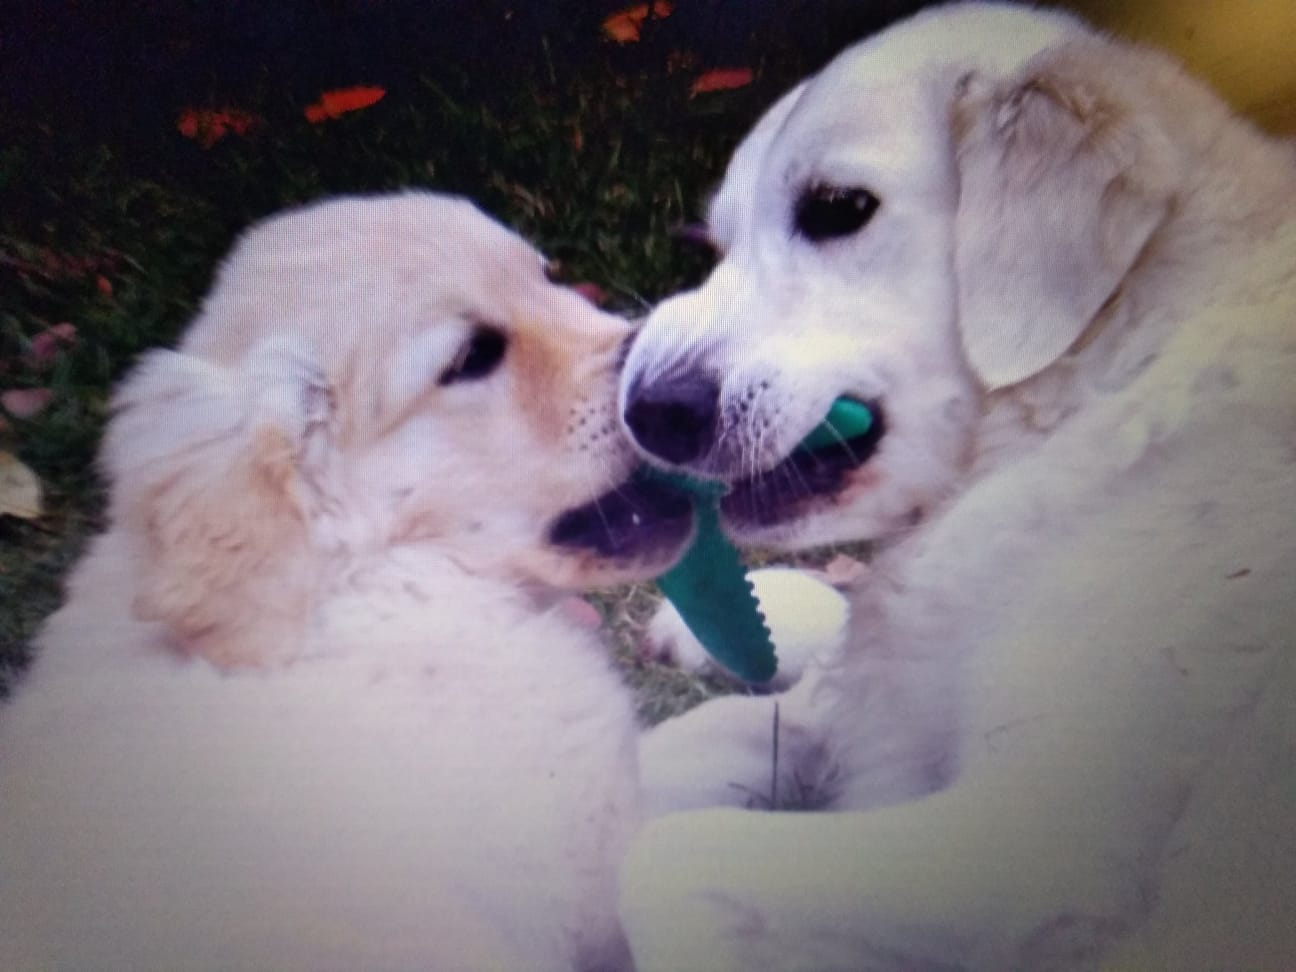 2 golden retrievers playing with a toy